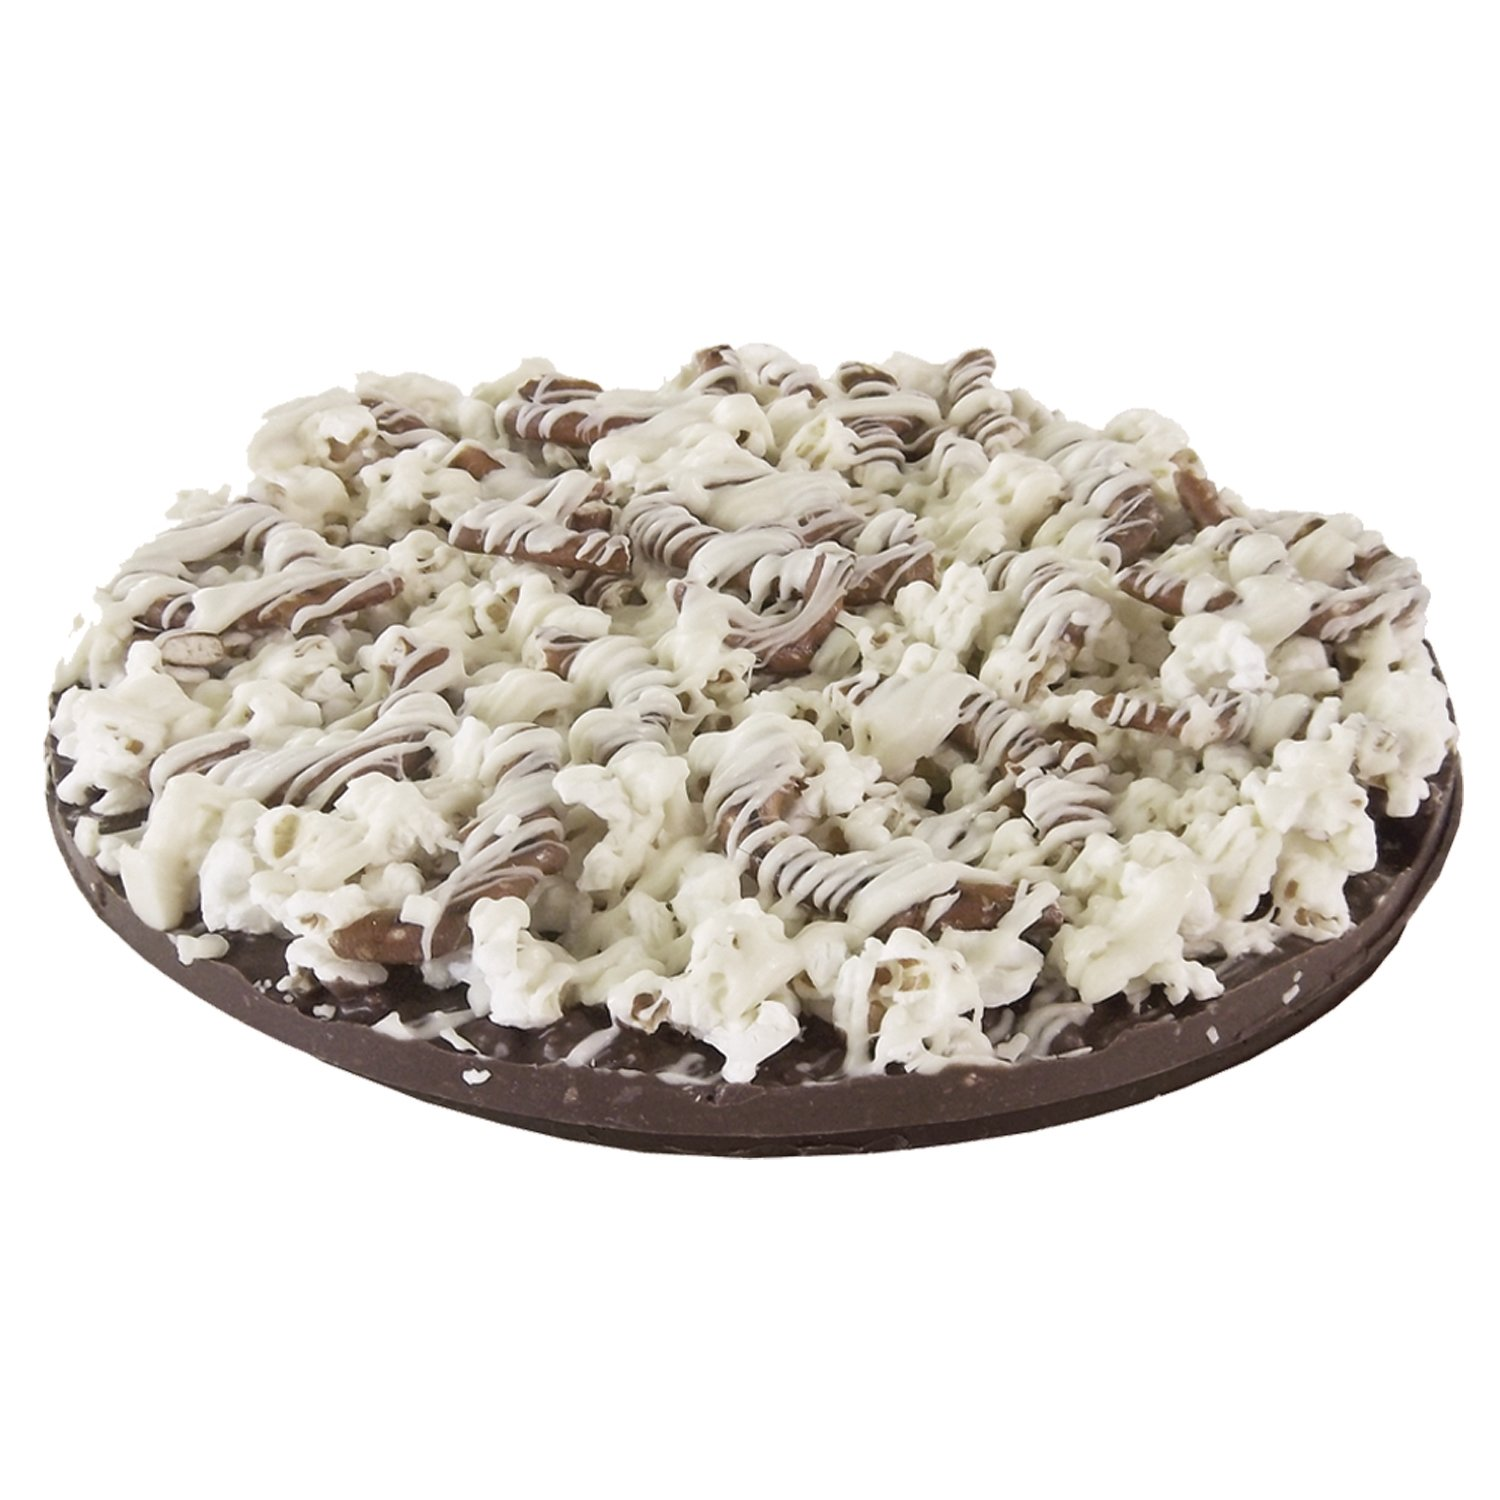 Gourmet Chocolate Pizza with Pizazz™ 10